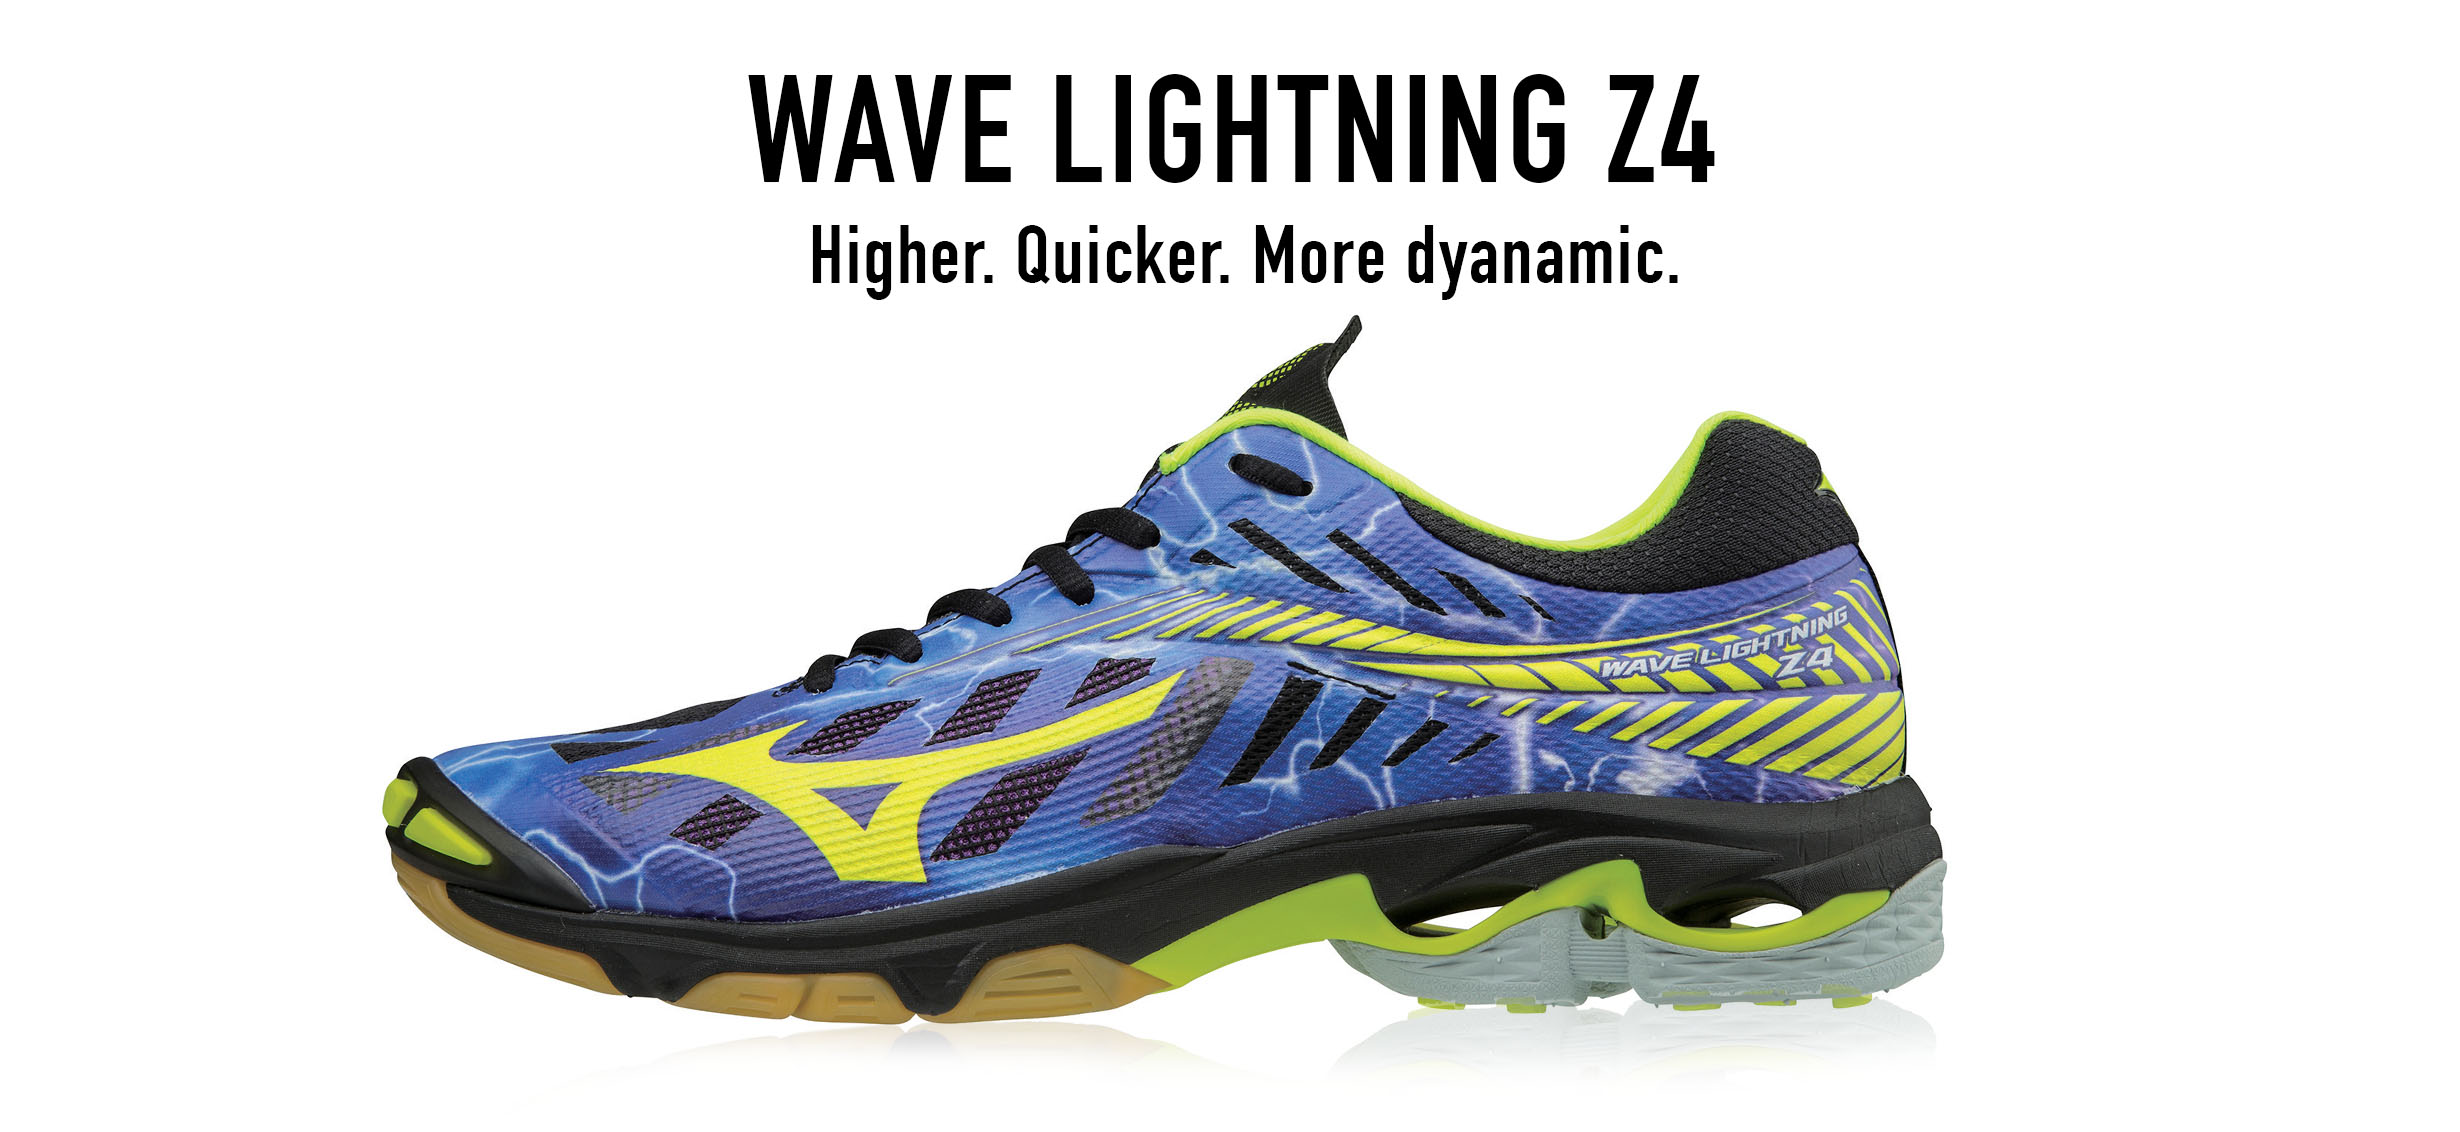 Mizuno - Indoor - Wave Lightning Z4 e8ed714273